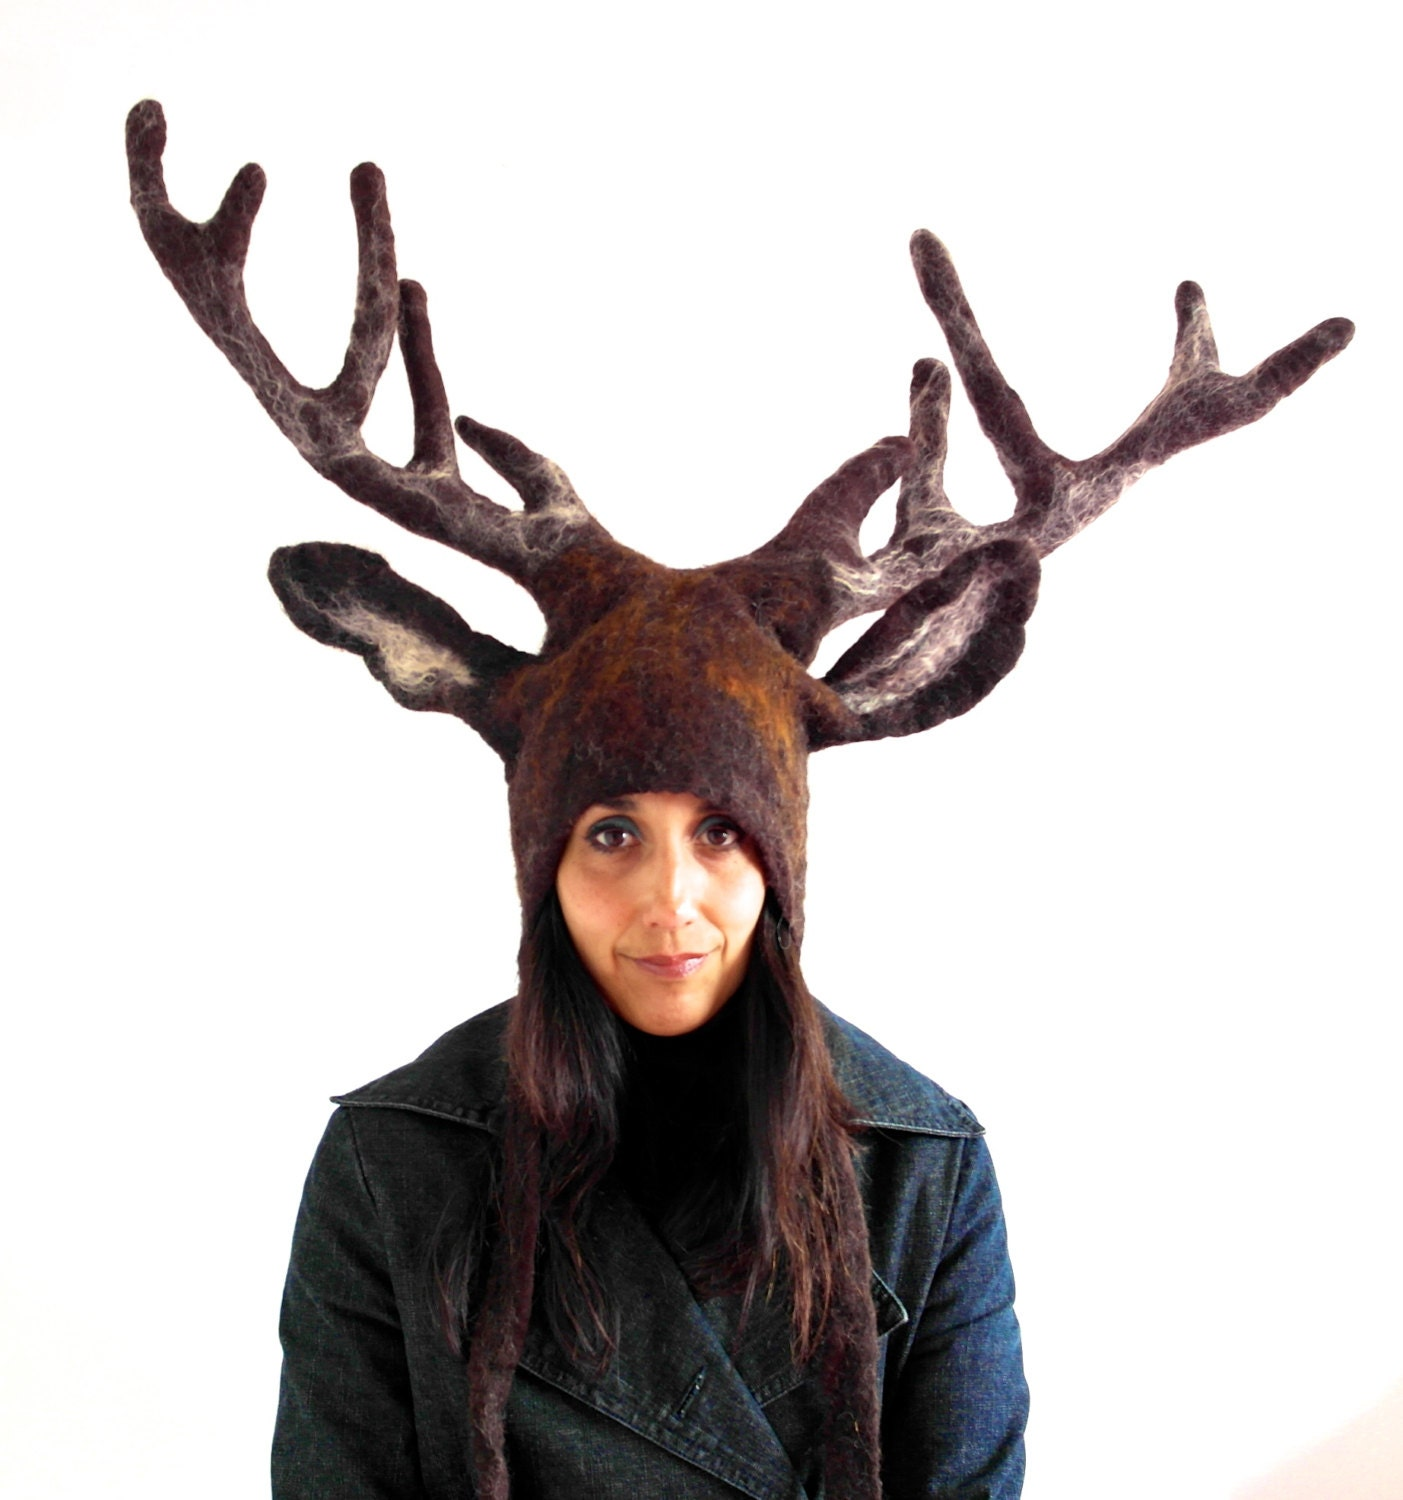 You searched for: deer antlers costume! Etsy is the home to thousands of handmade, vintage, and one-of-a-kind products and gifts related to your search. No matter what you're looking for or where you are in the world, our global marketplace of sellers can help you .